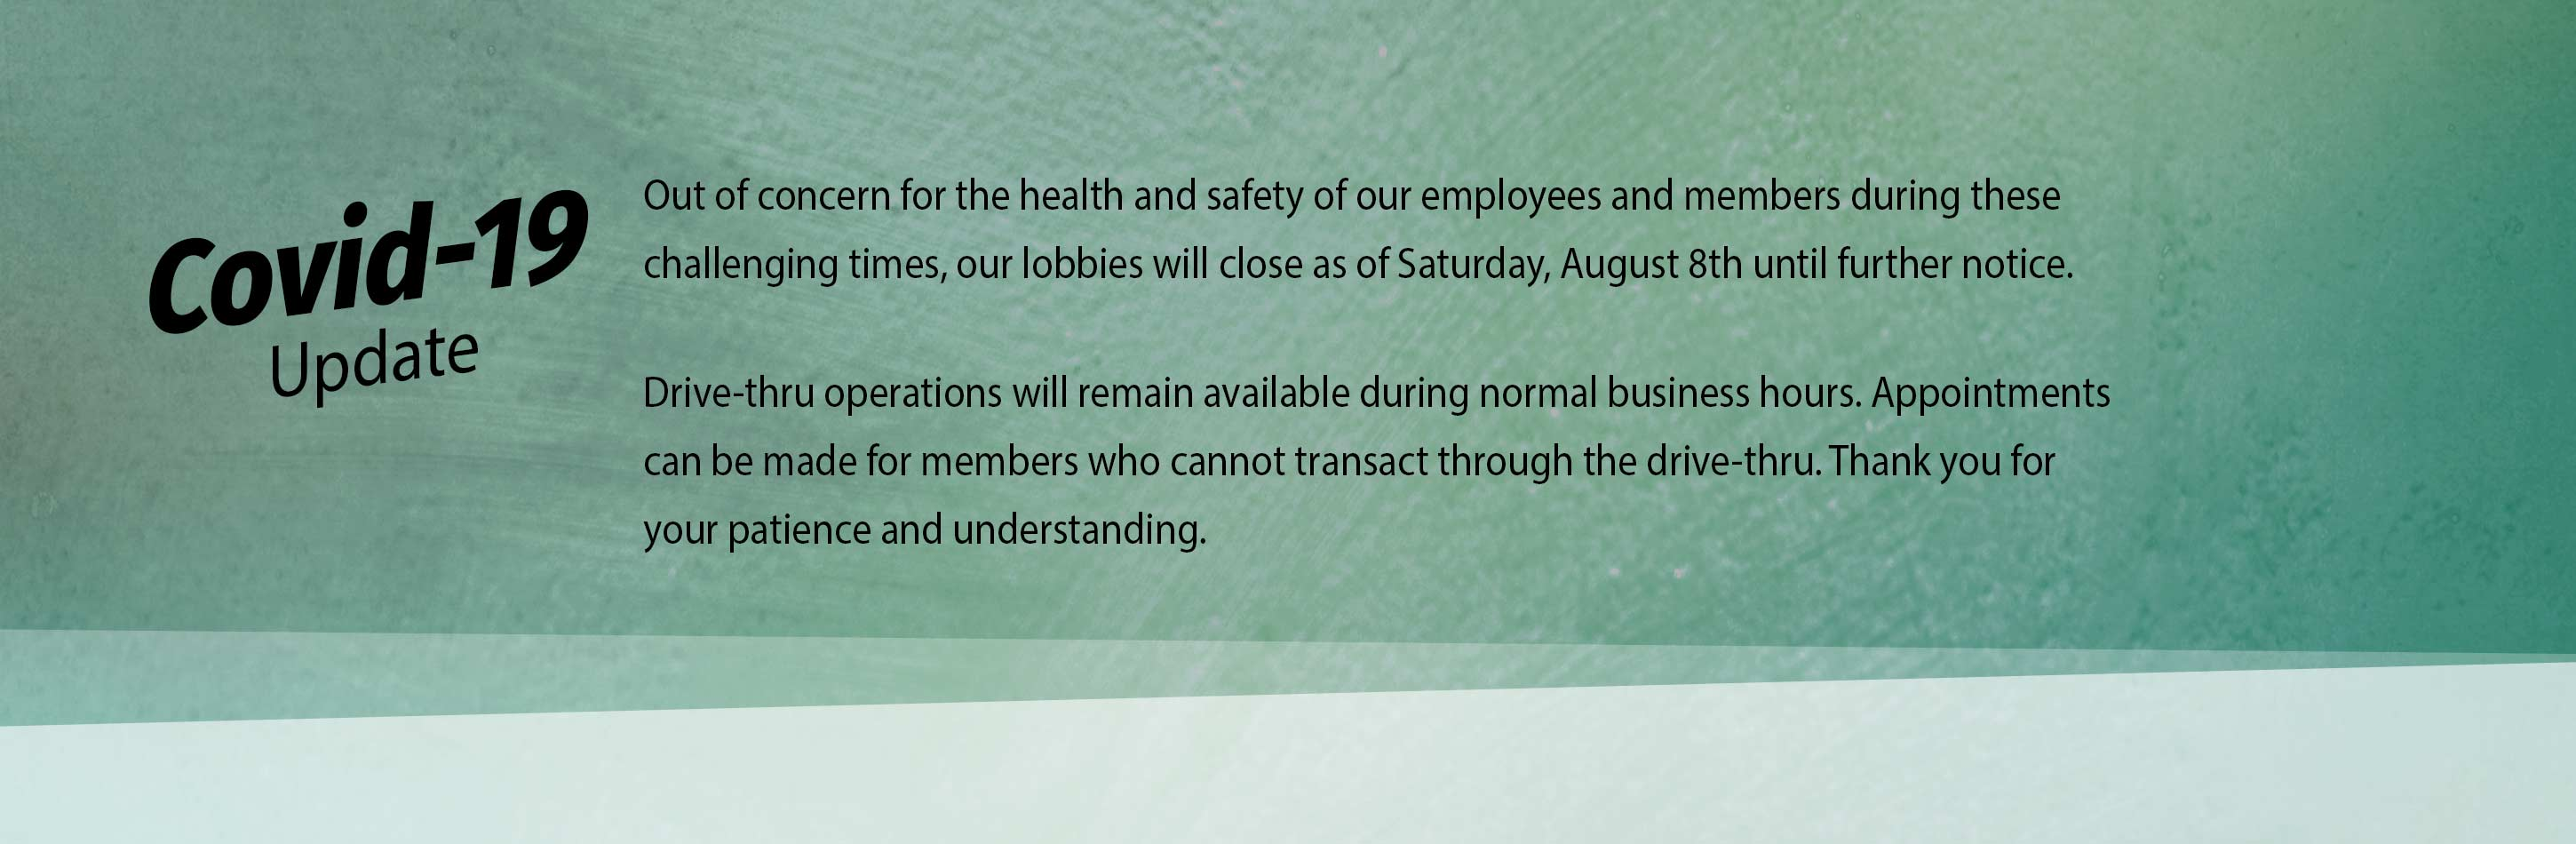 Covid-19 Update. Out of concern for the health and safety of our employees and members during these challenging times, our lobbies will close as of Saturday, August 8th until further notice. Drive-thru operations will remain available during normal business hours. Appointments can be made for members who cannot transact through the drive-thru. Thank you for your patience and understanding.